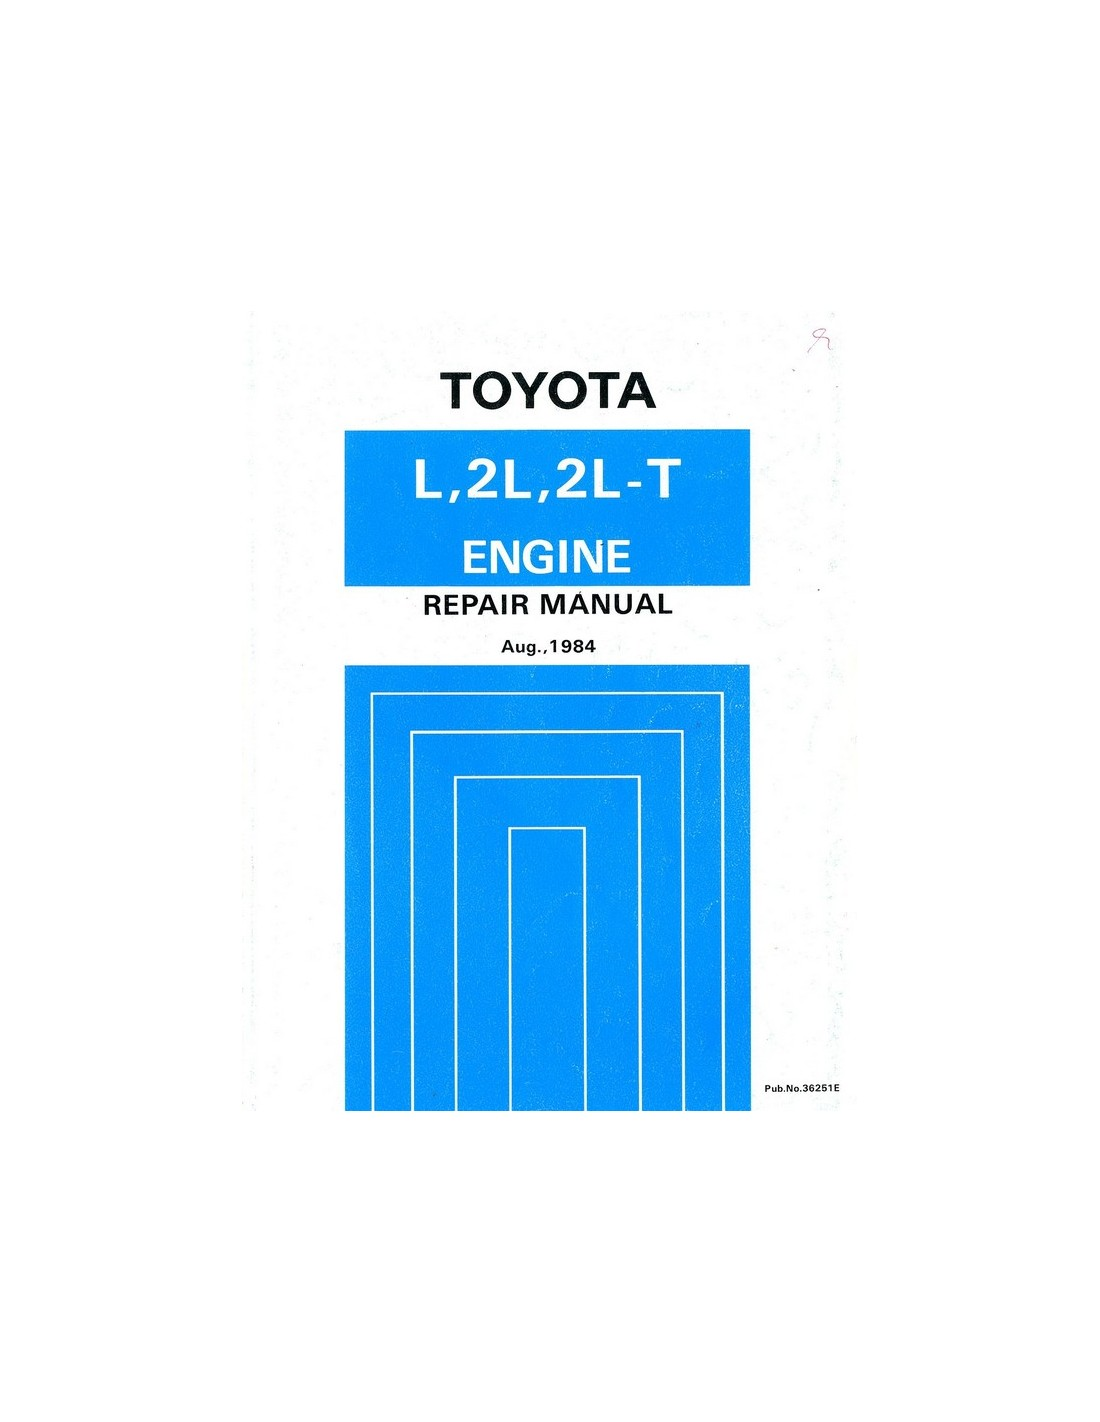 1984 toyota cressida crown hiace toyoace buv l 2l 2l t hilux engine rh autolit eu toyota 2l engine manual 2l engine manual download